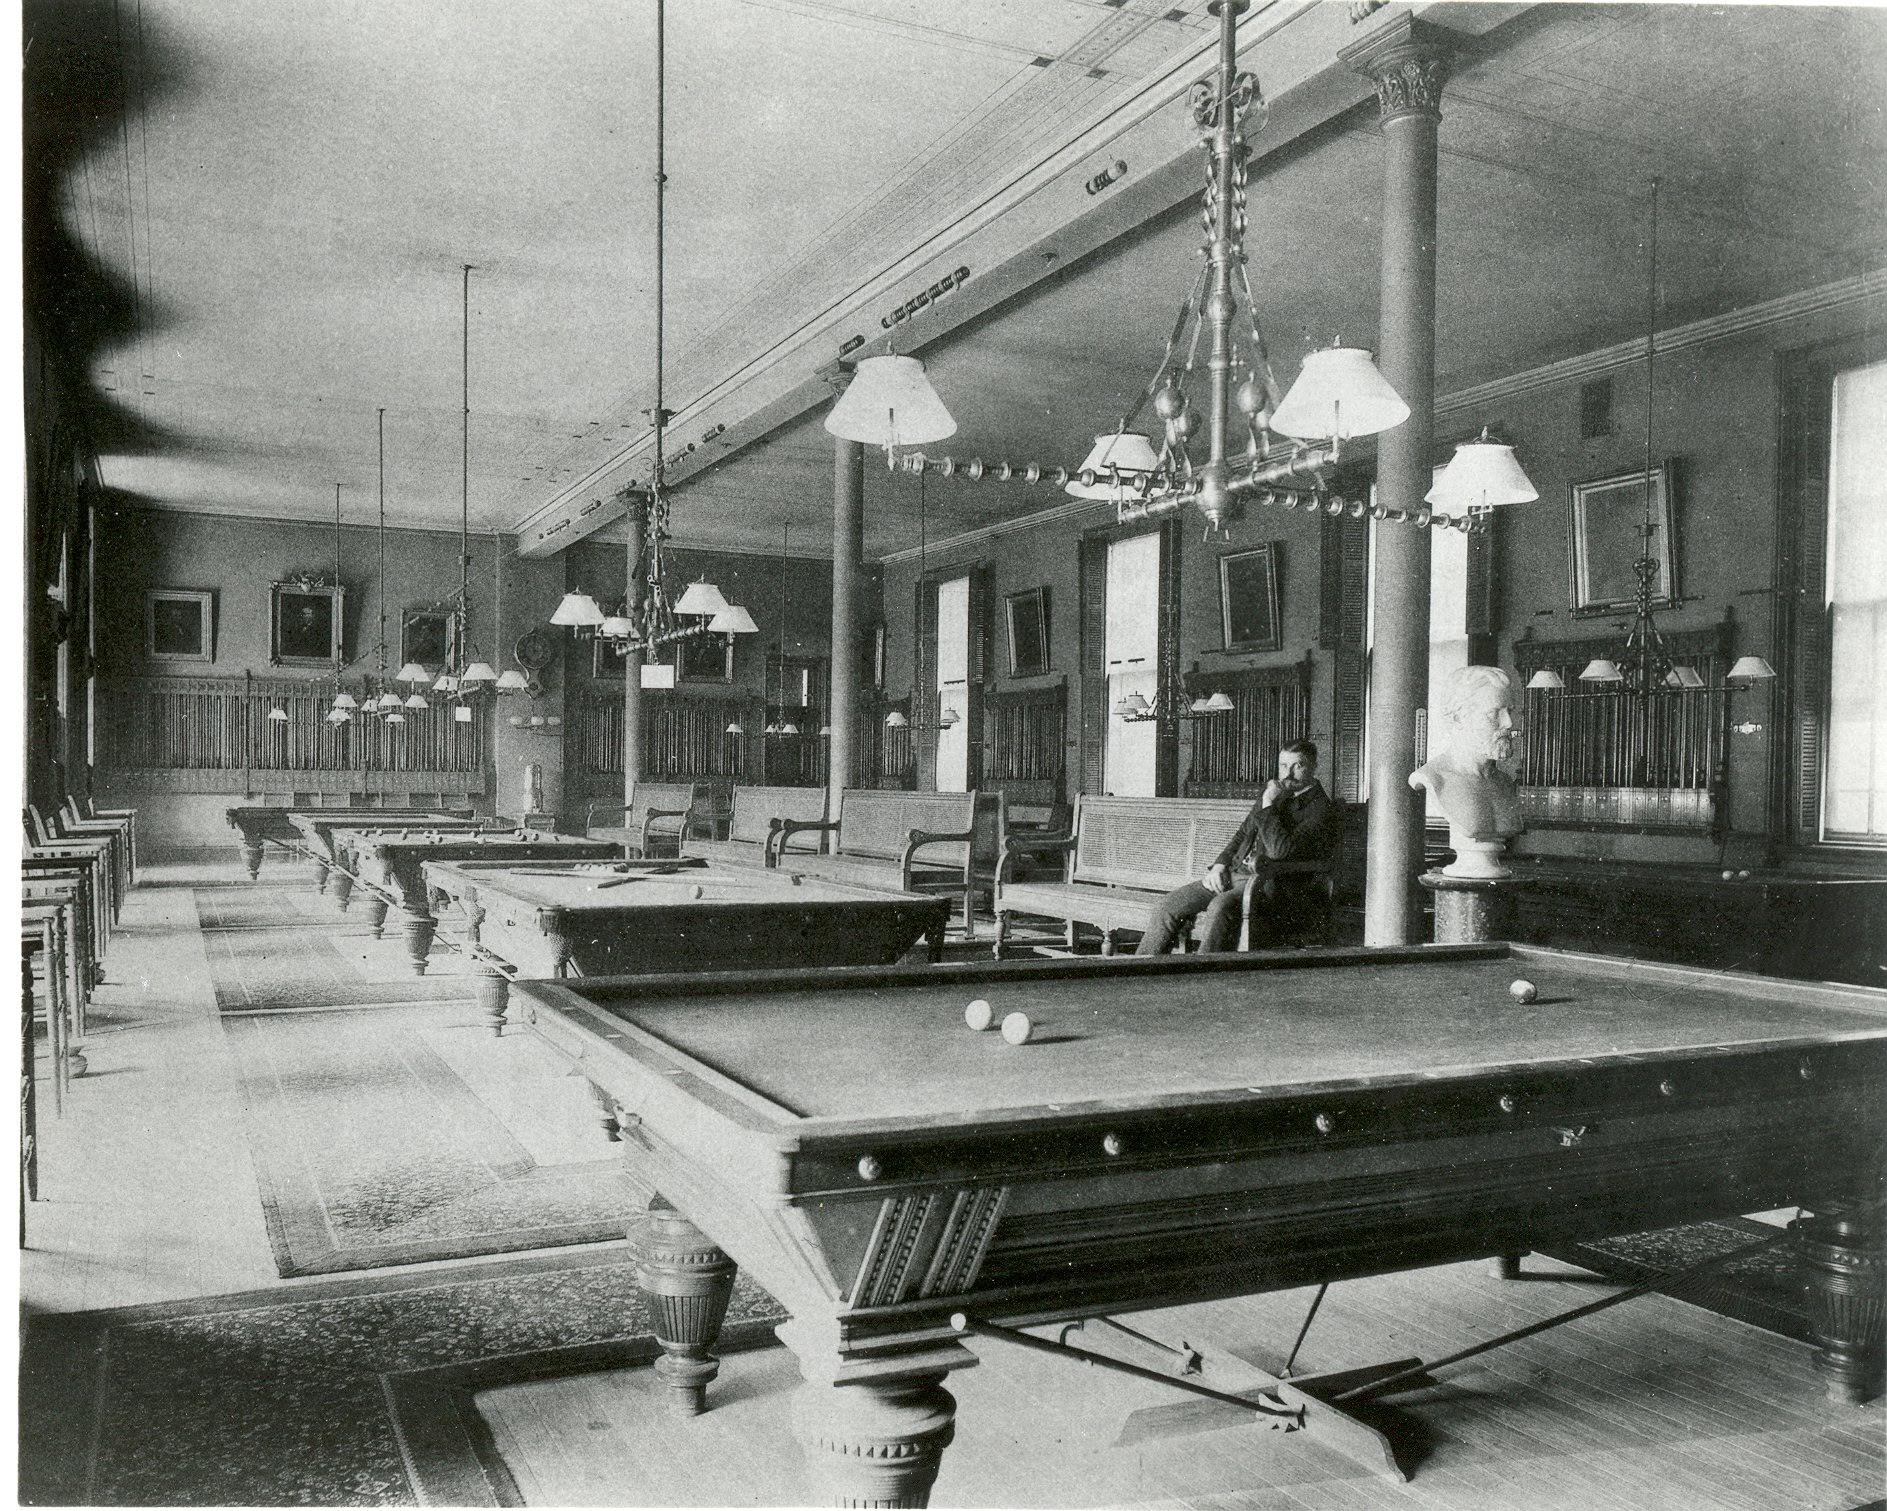 Billiards Pool Encyclopedia Of Greater Philadelphia - Kensington pool table